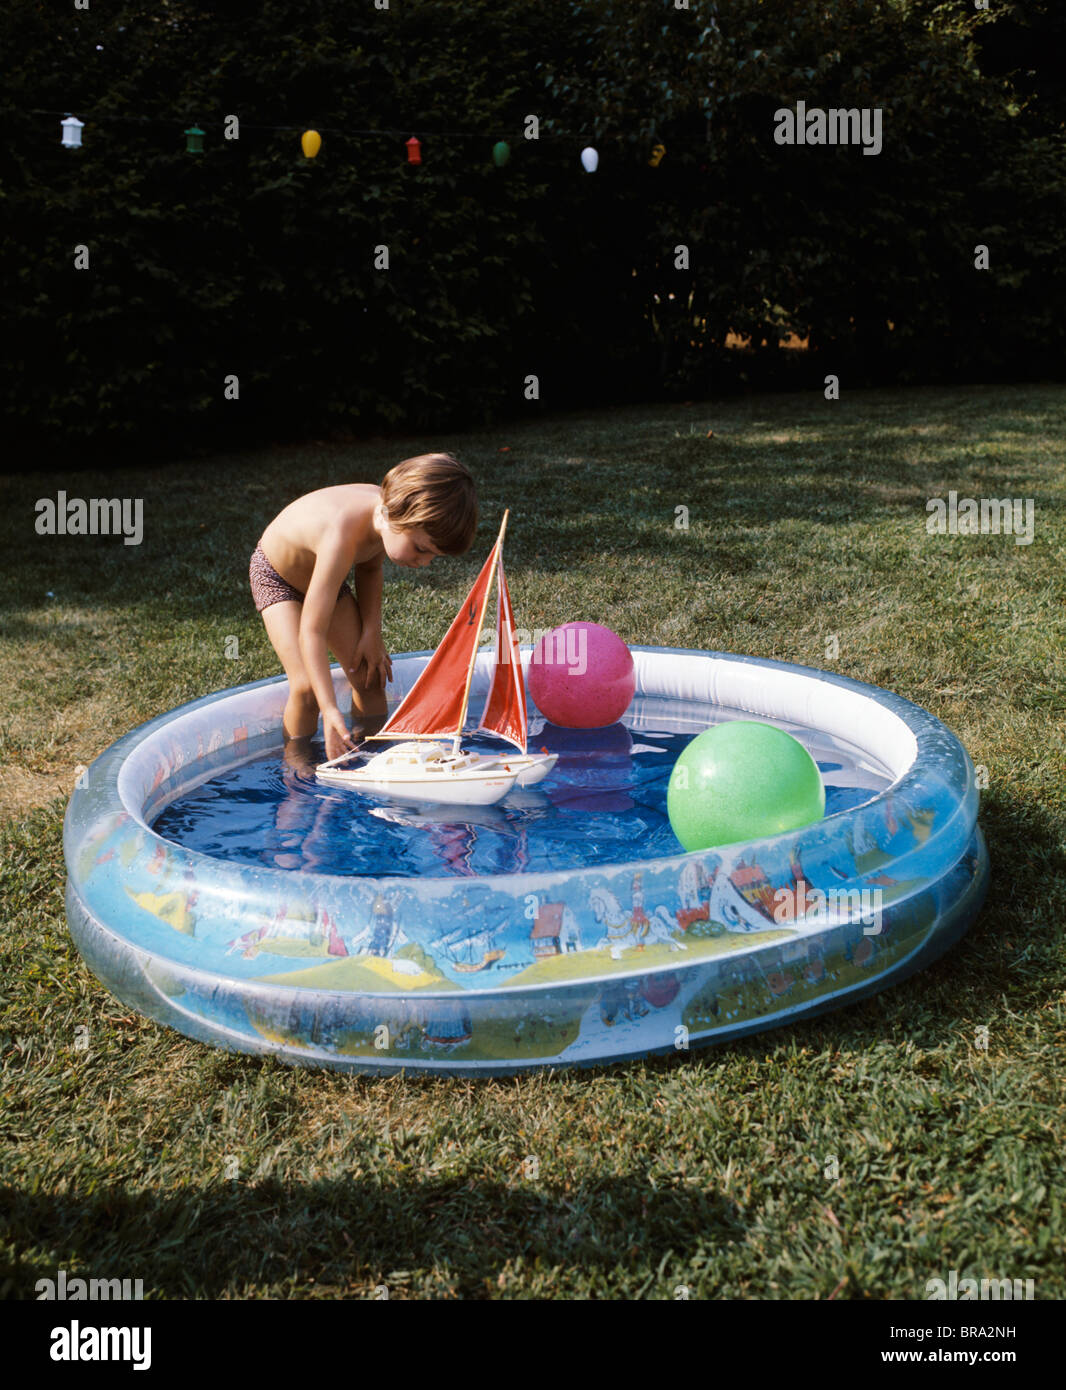 1970s boy toddler playing toy boat backyard plastic inflatable